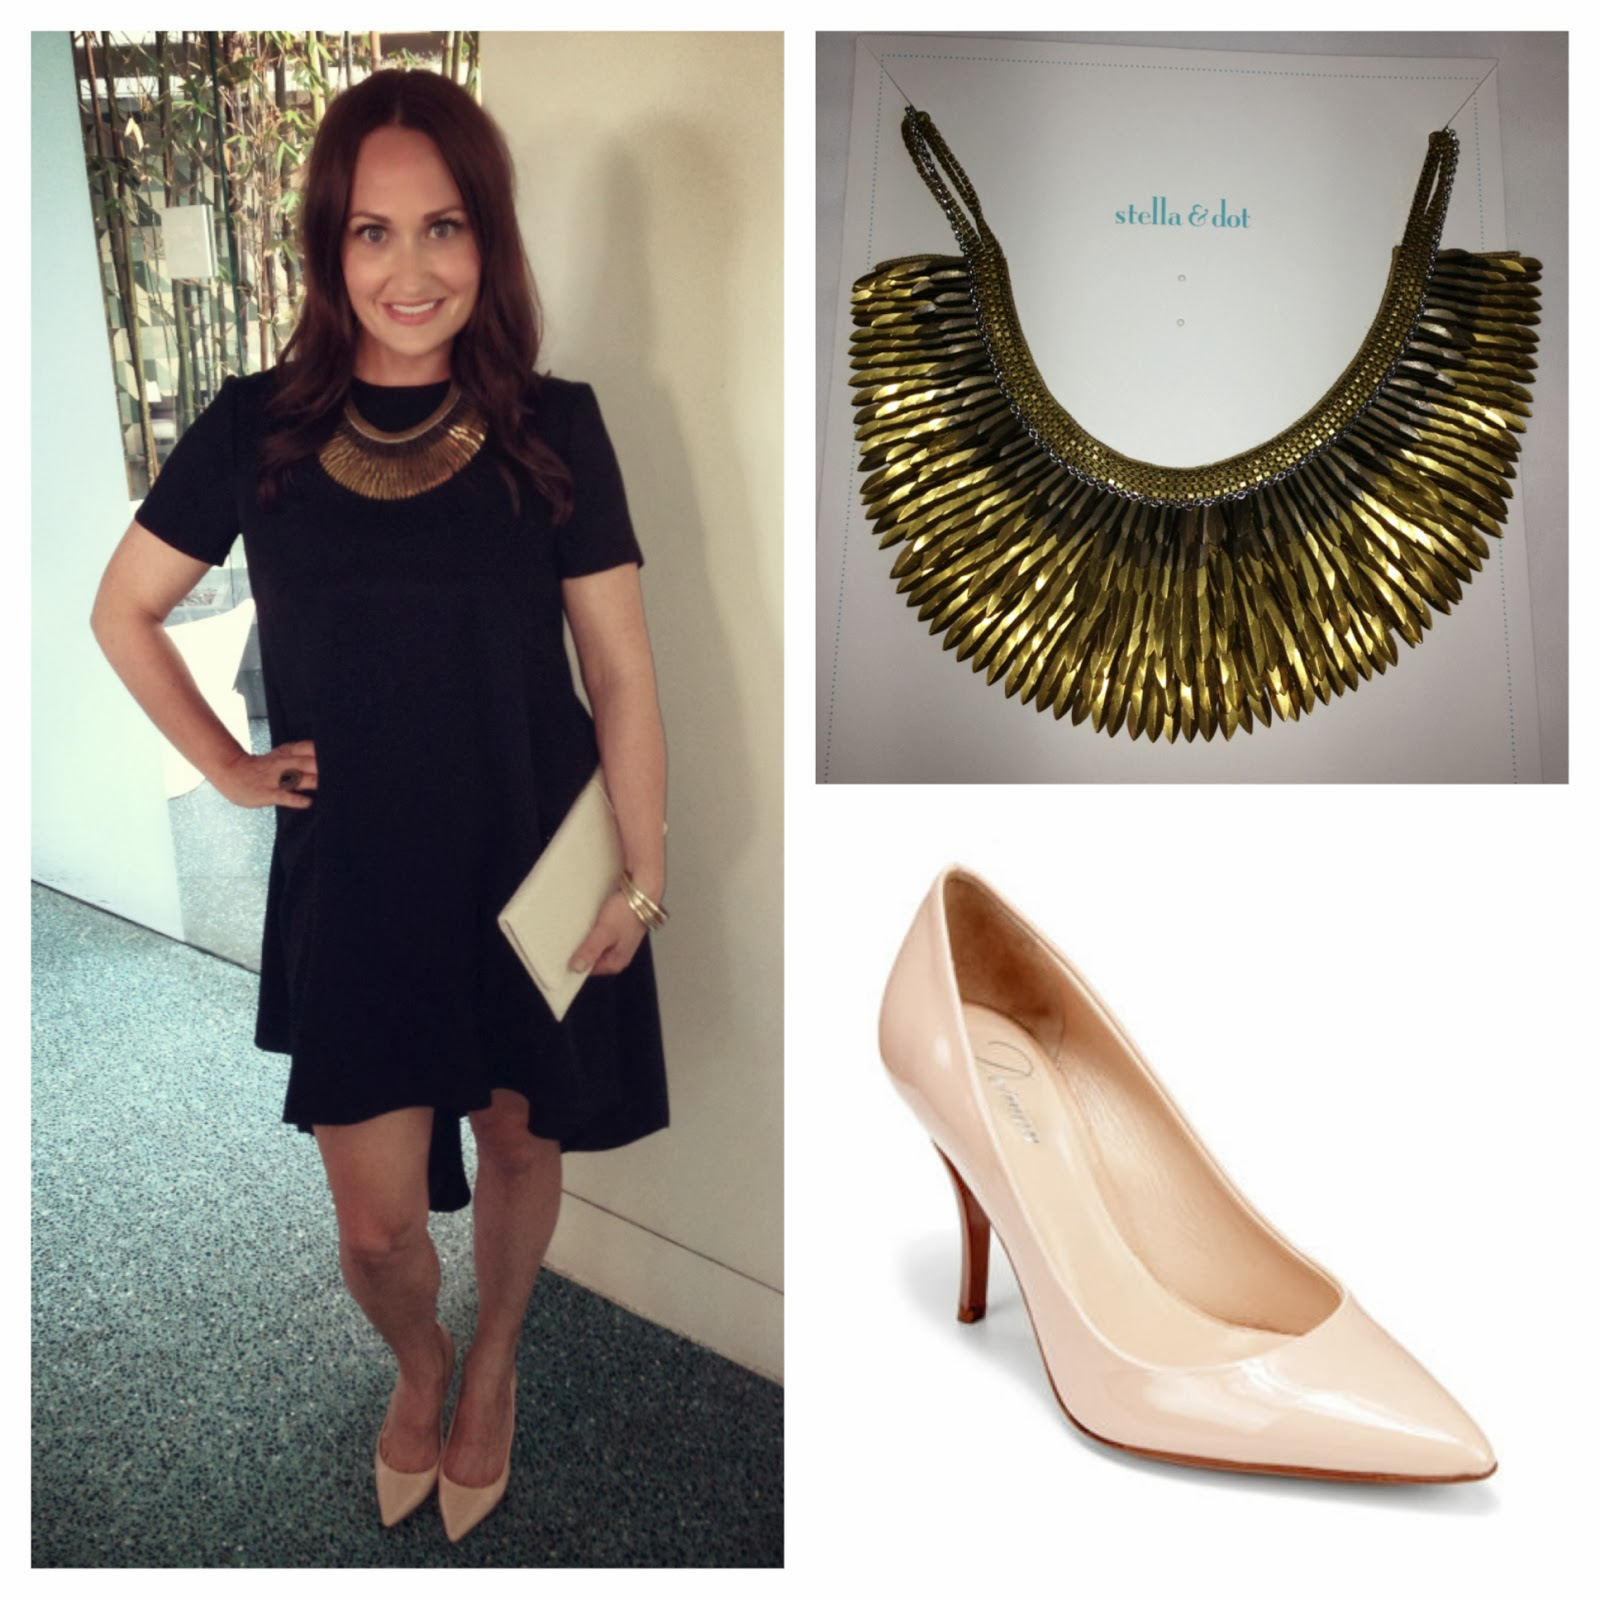 Black Asos High Low Dress My Hardware Stella Dot For More Info Contact Suzy At Www Stelladot Suzybacino Delman Pumps